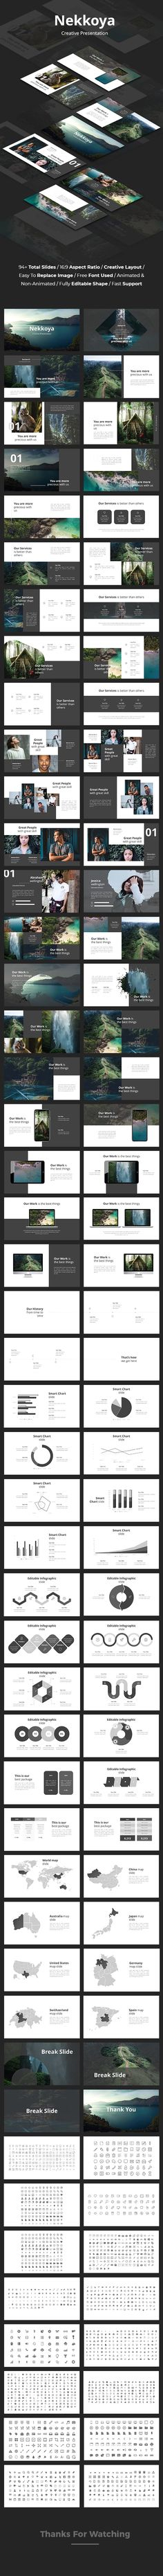 43 best FREE PowerPoint Template images on Pinterest in 2018 | Free ...